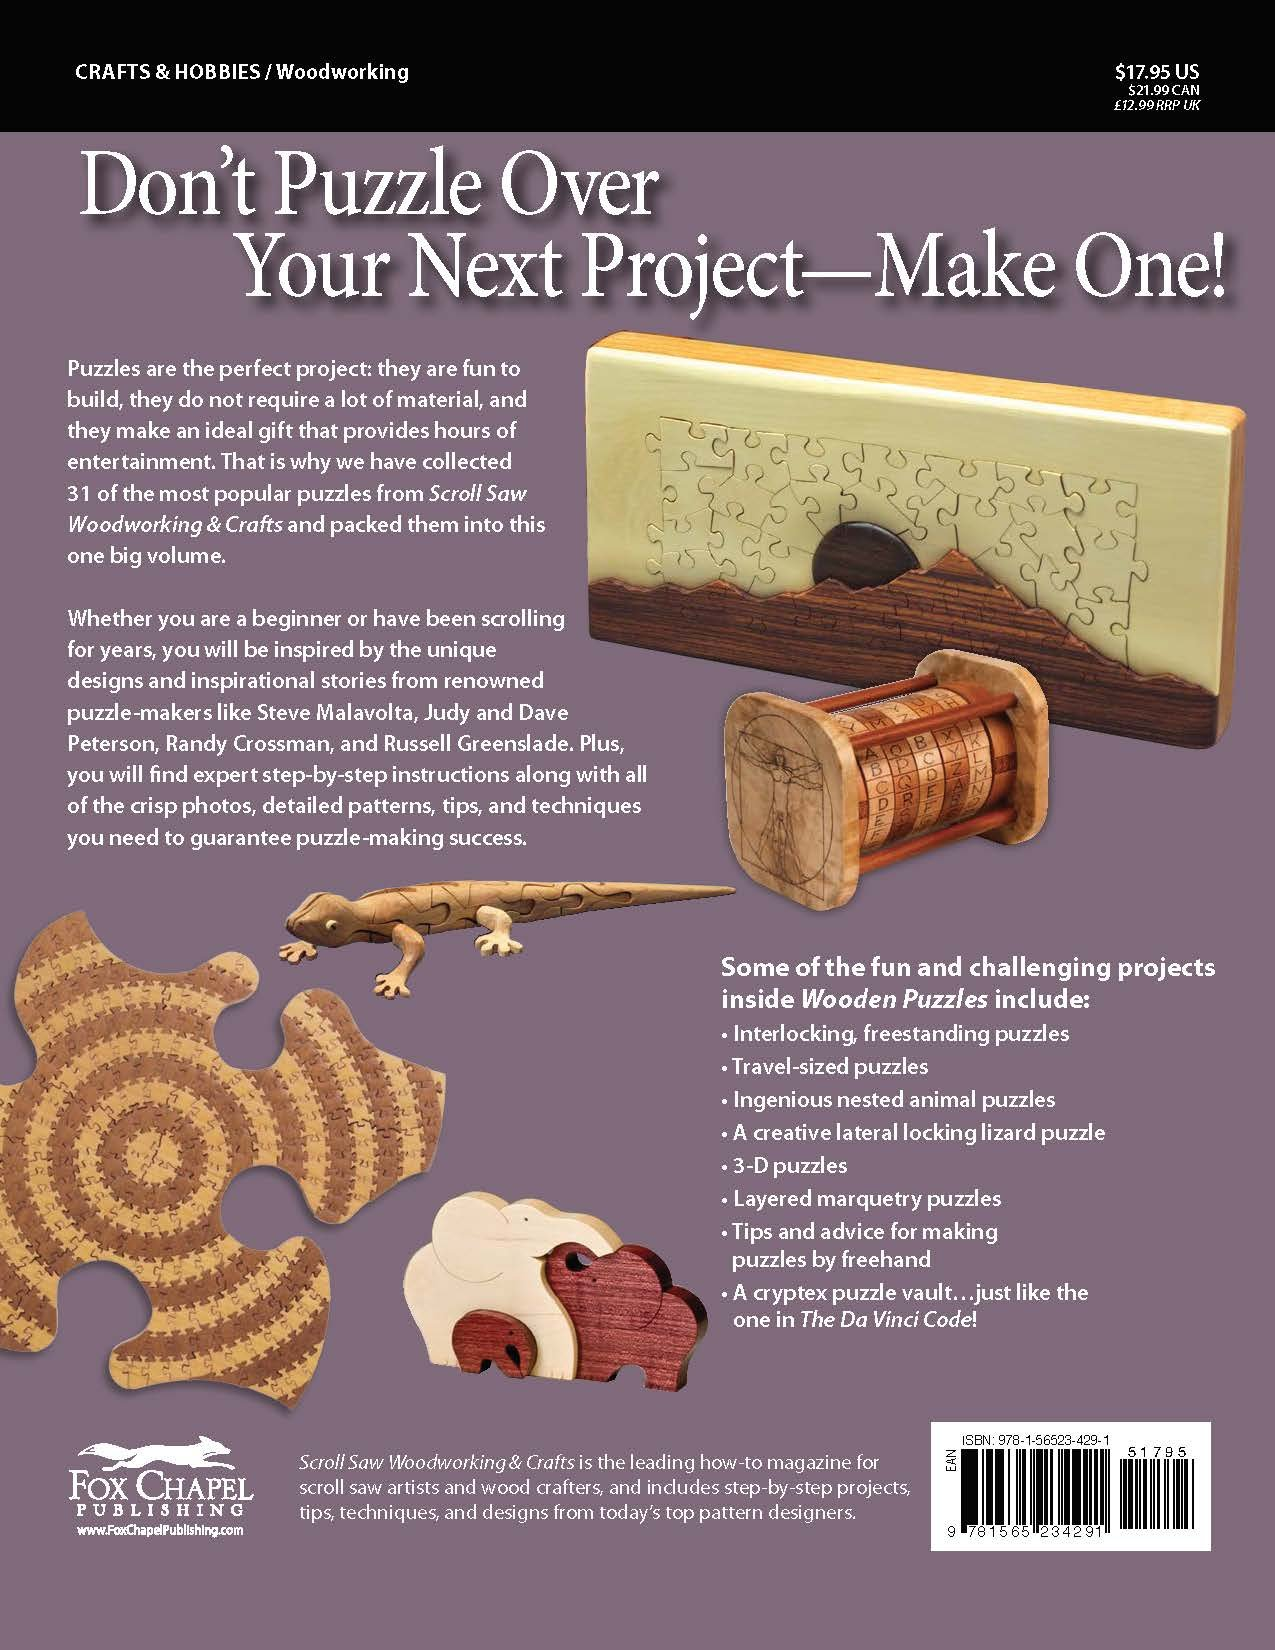 Wooden puzzles 31 favorite projects and patterns best of scroll wooden puzzles 31 favorite projects and patterns best of scroll saw woodworking crafts magazine editors of scroll saw woodworking crafts fandeluxe Images